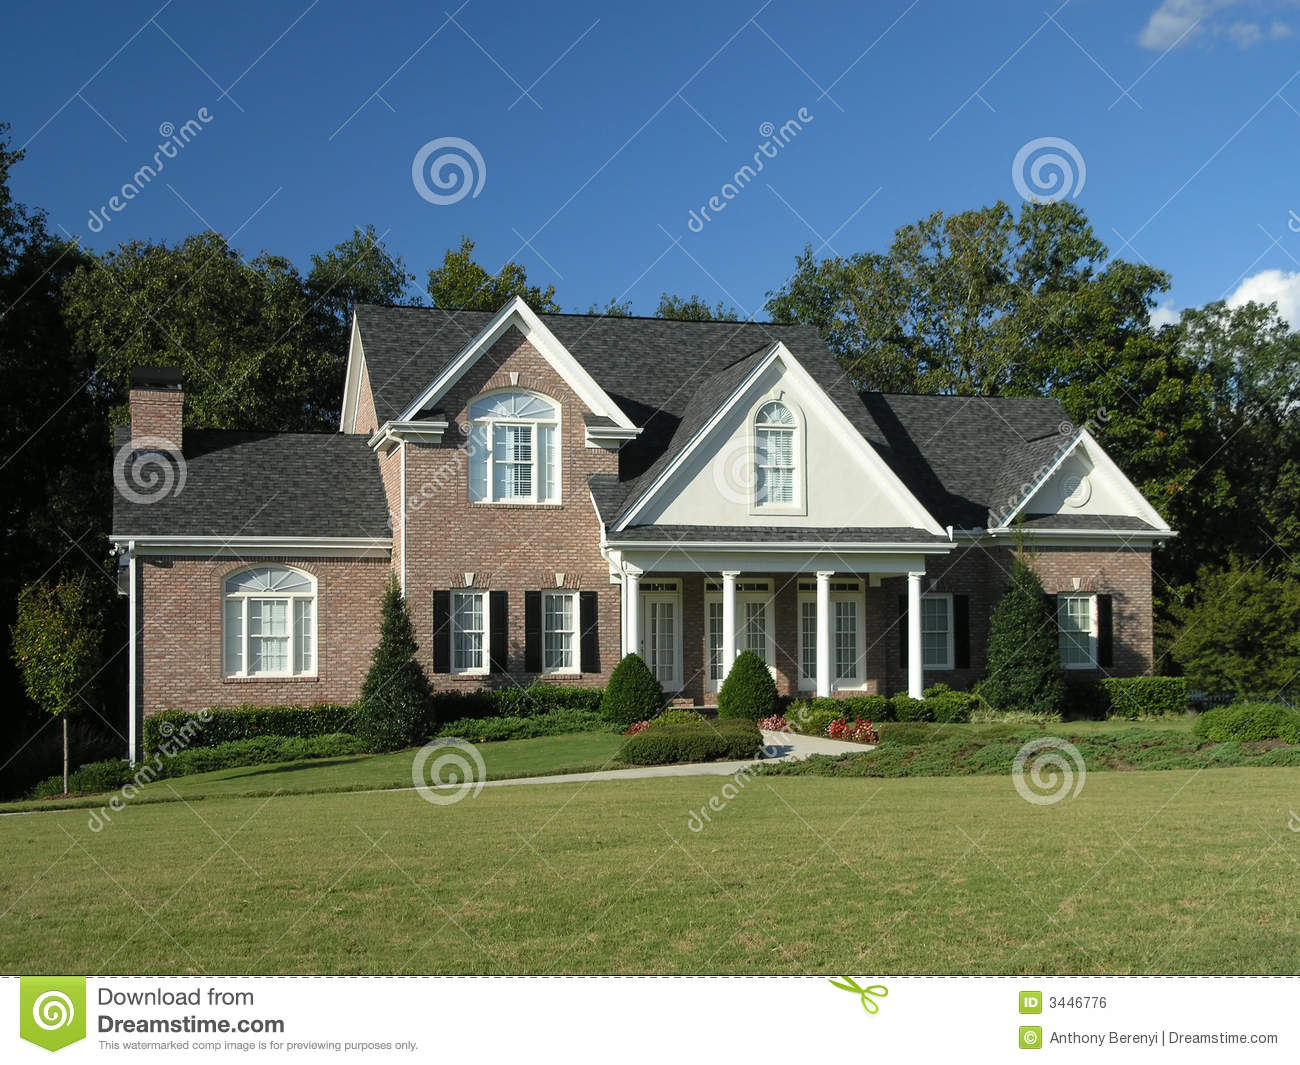 Luxury Home Exterior 61 Royalty Free Stock Image Image